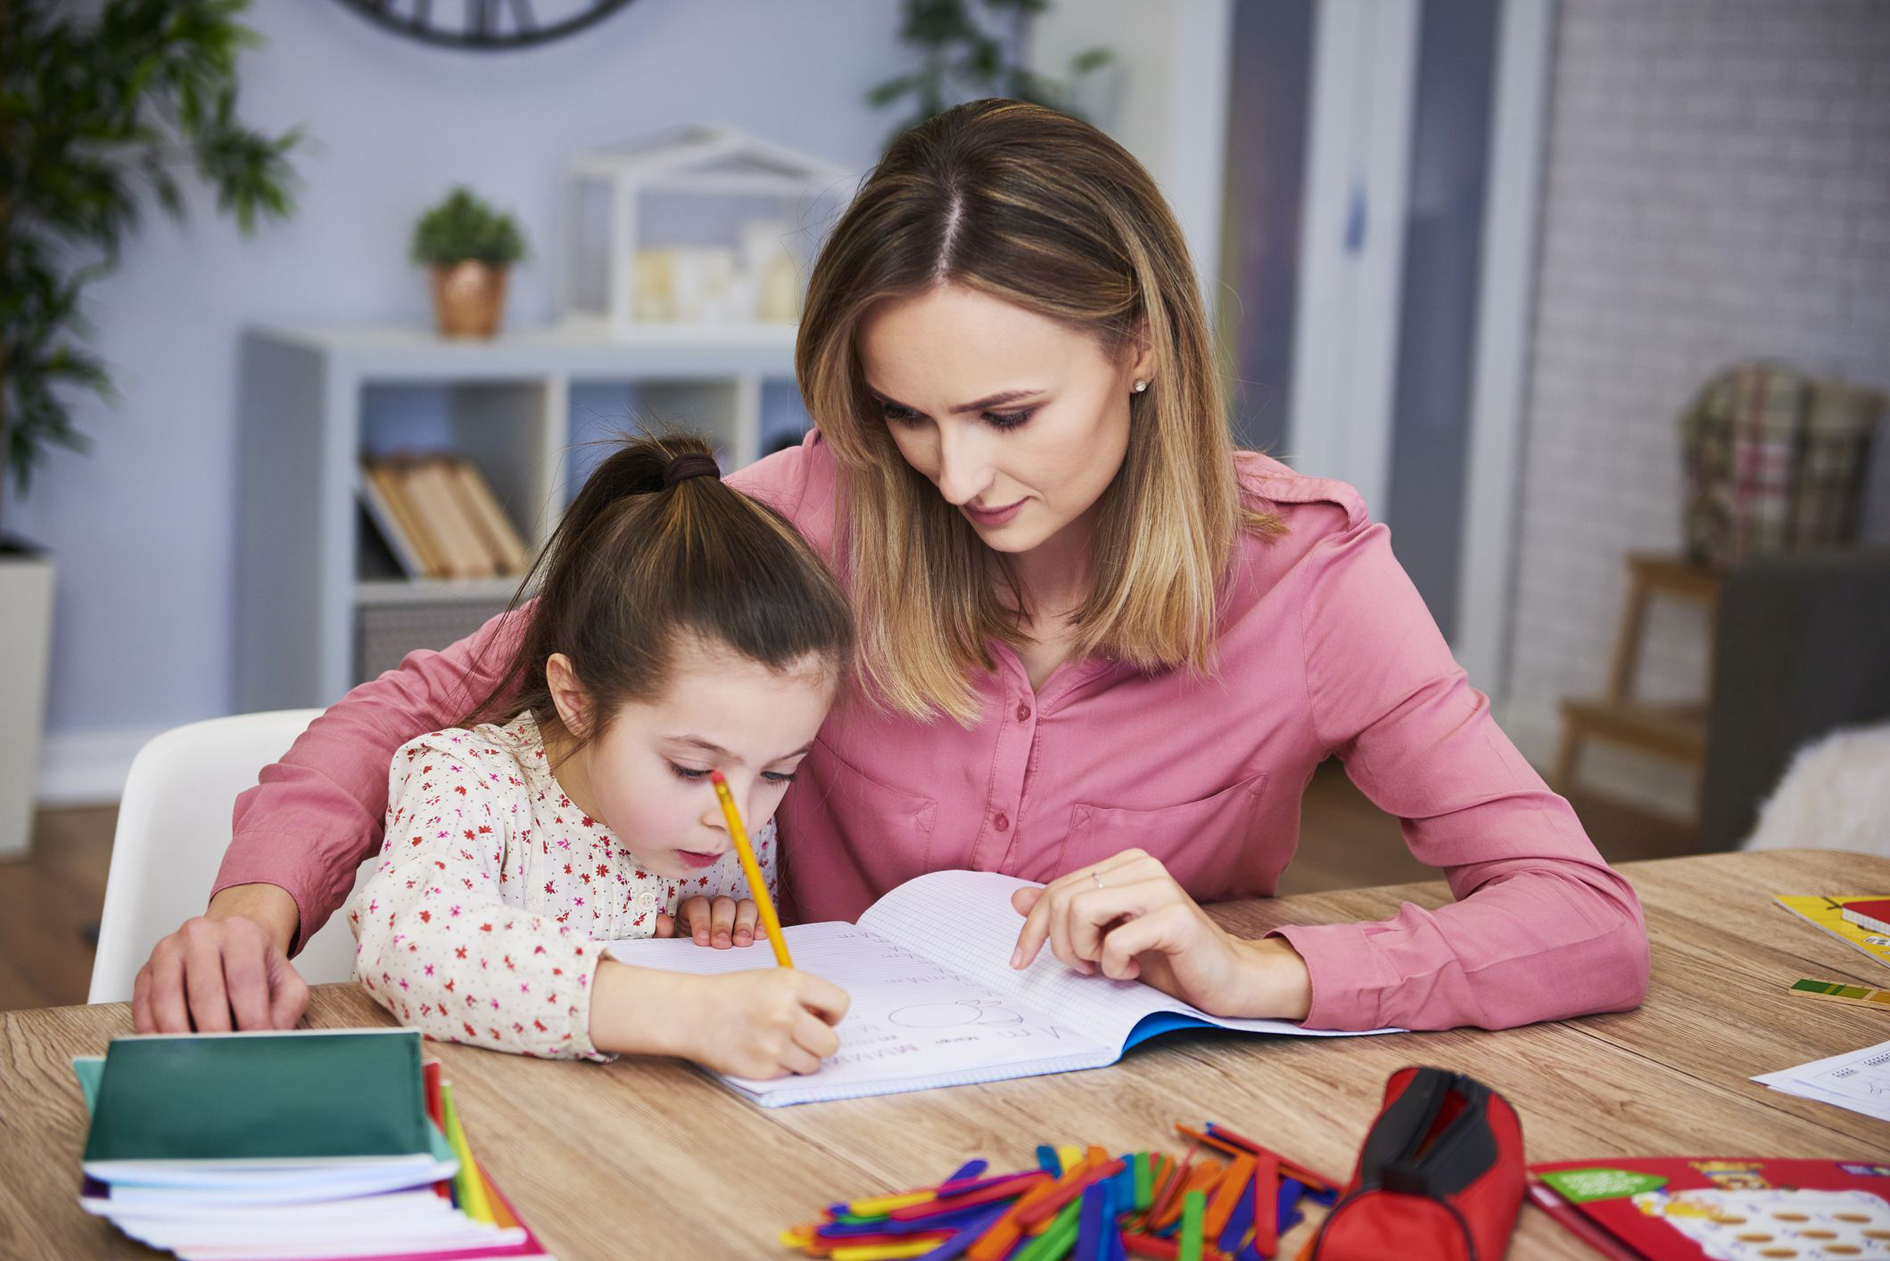 Affectionate mum helping her daughter with homework